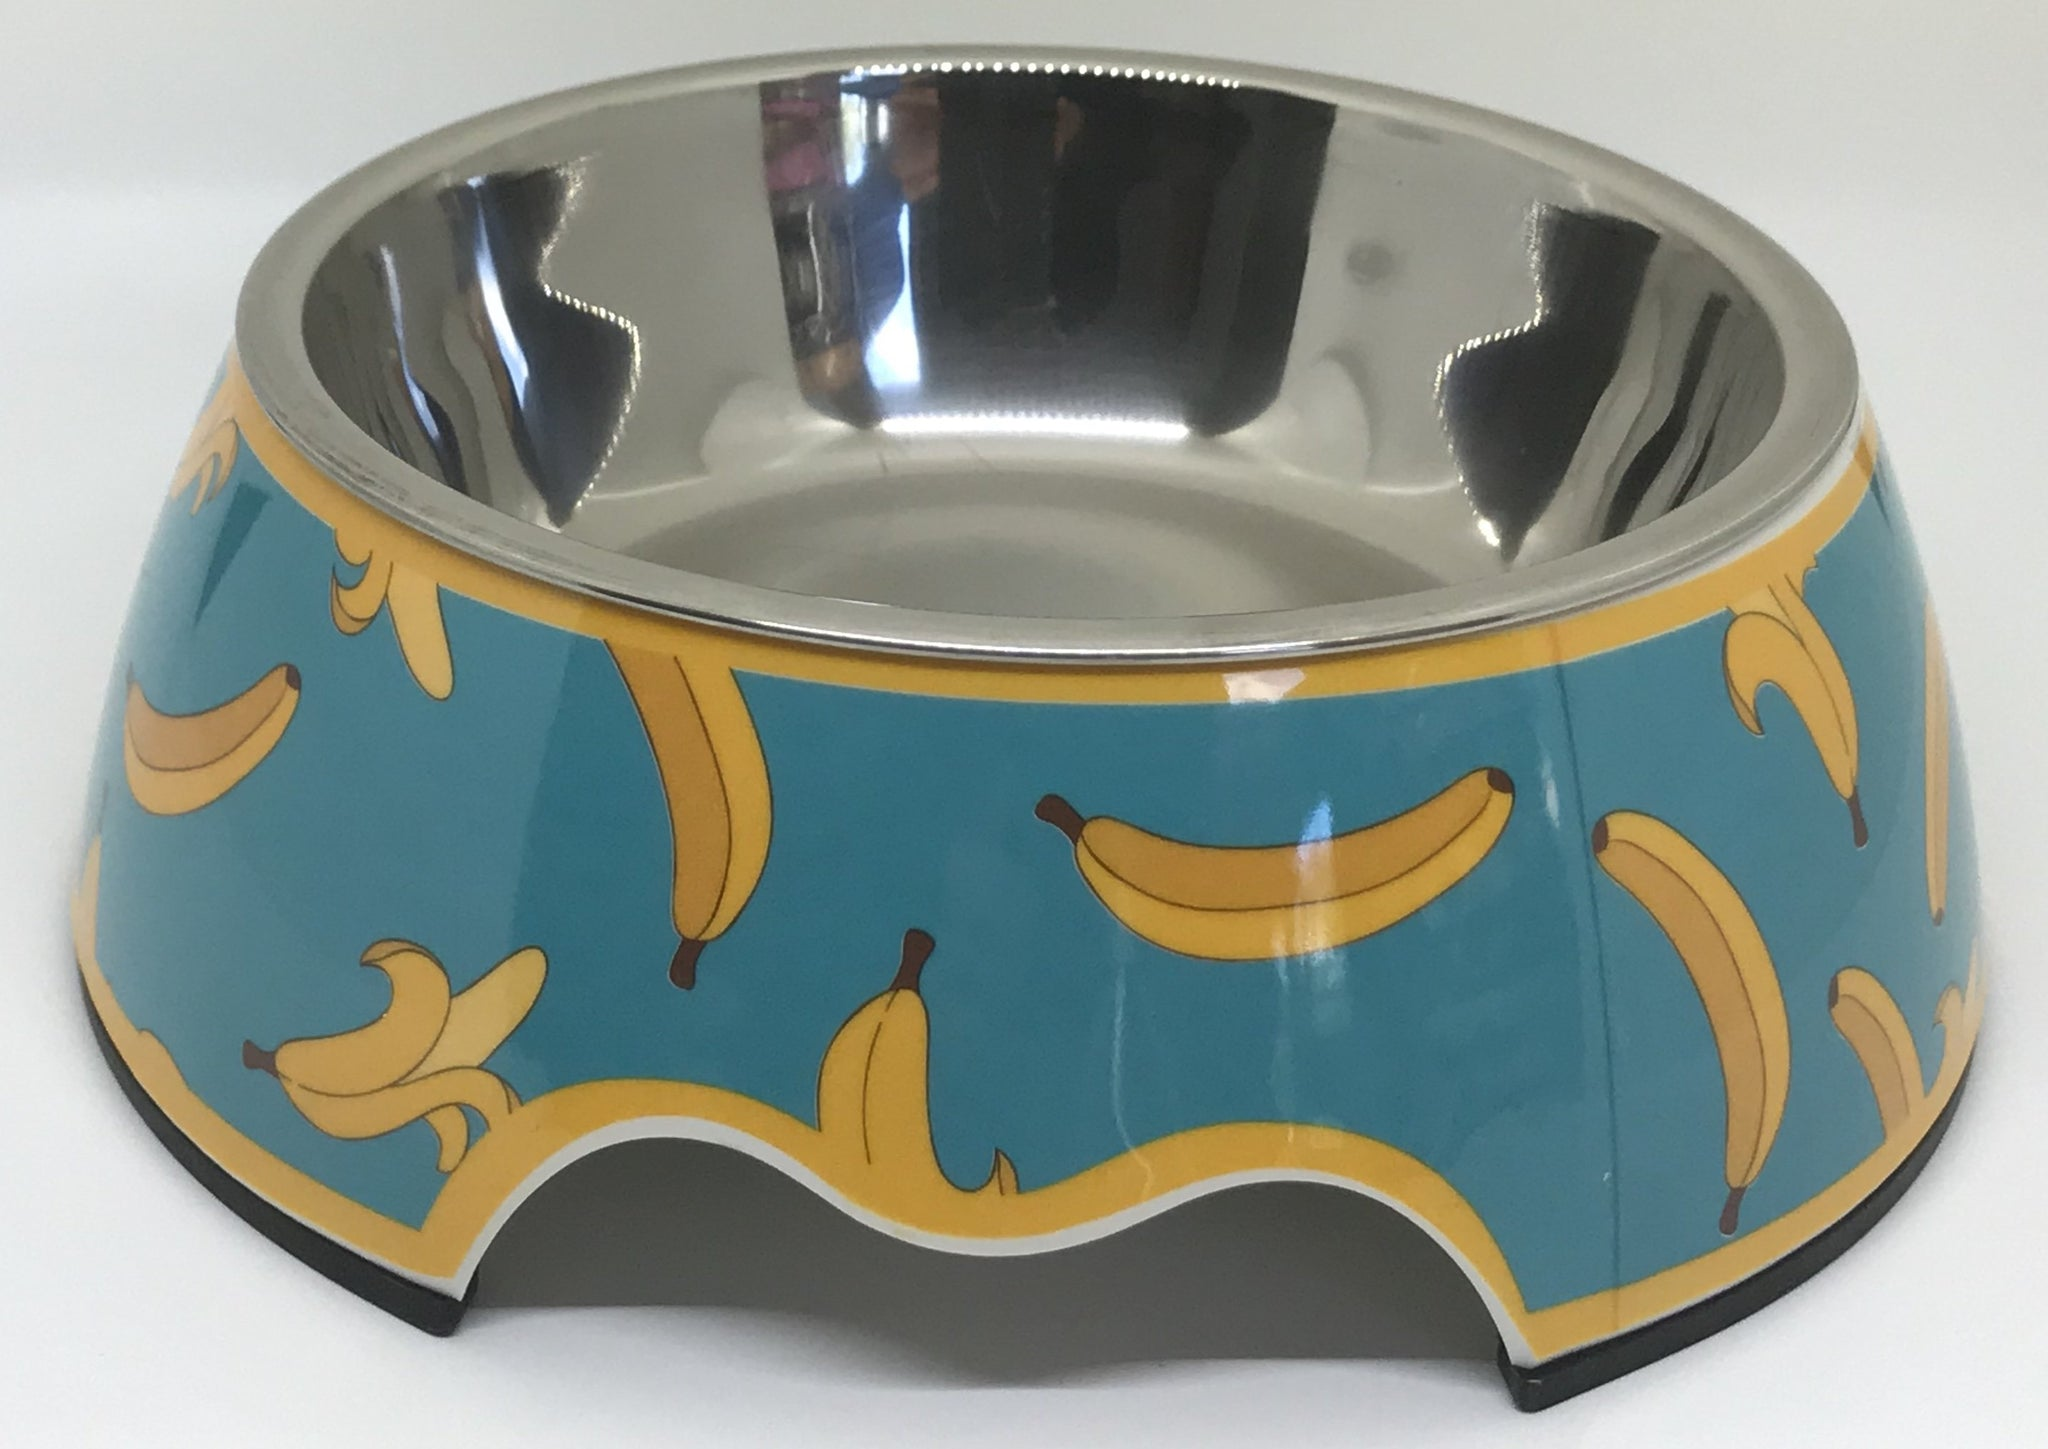 Going Bananas Medium Size Dog Bowl